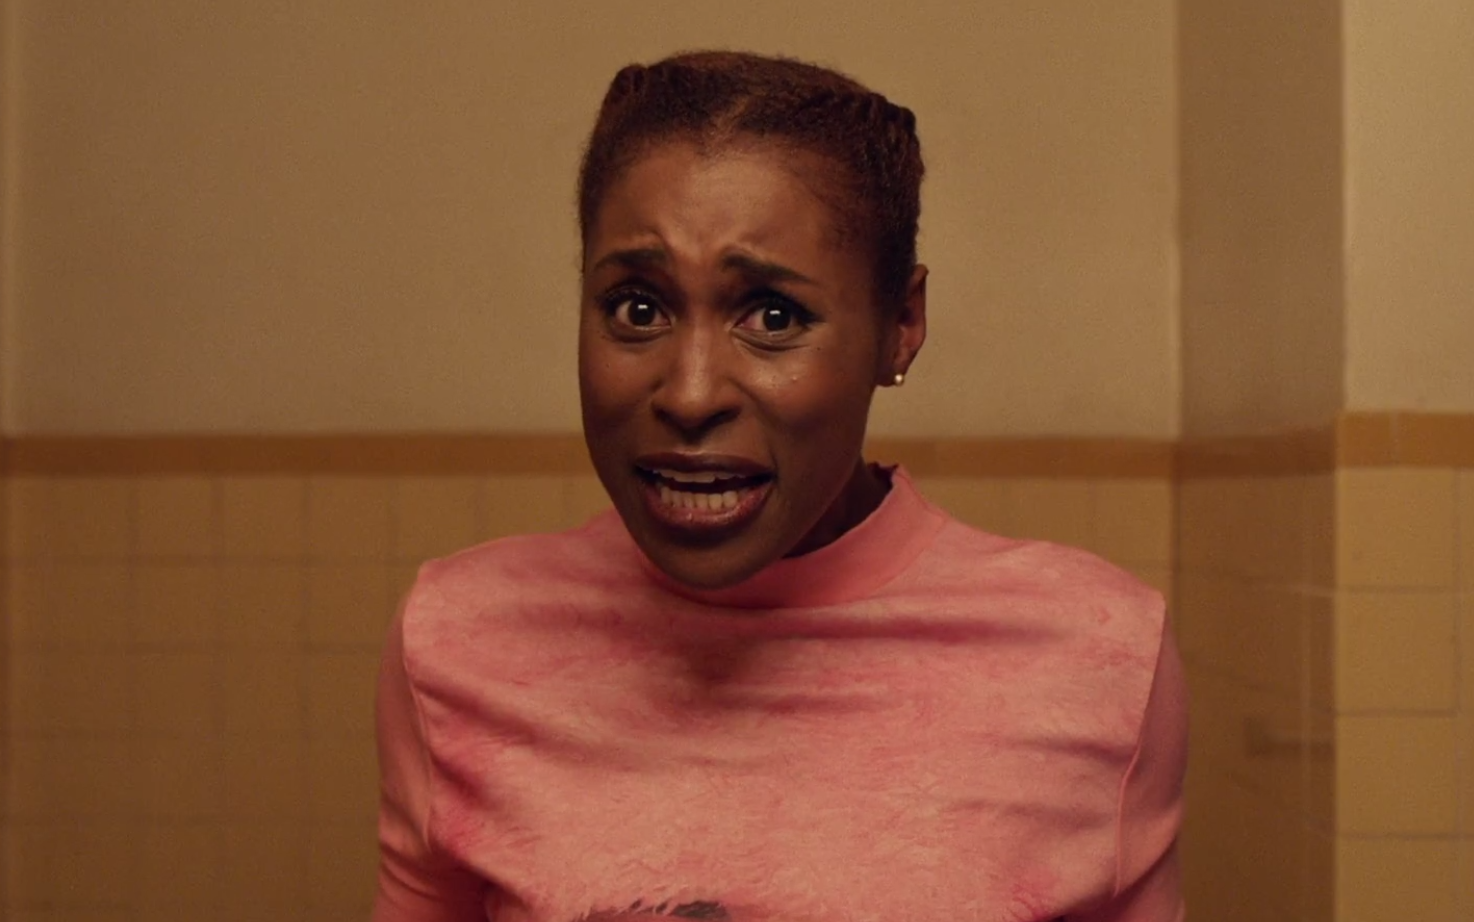 Flat twists Issa Rae Wore on HBO Insecure Hella Disrespectful